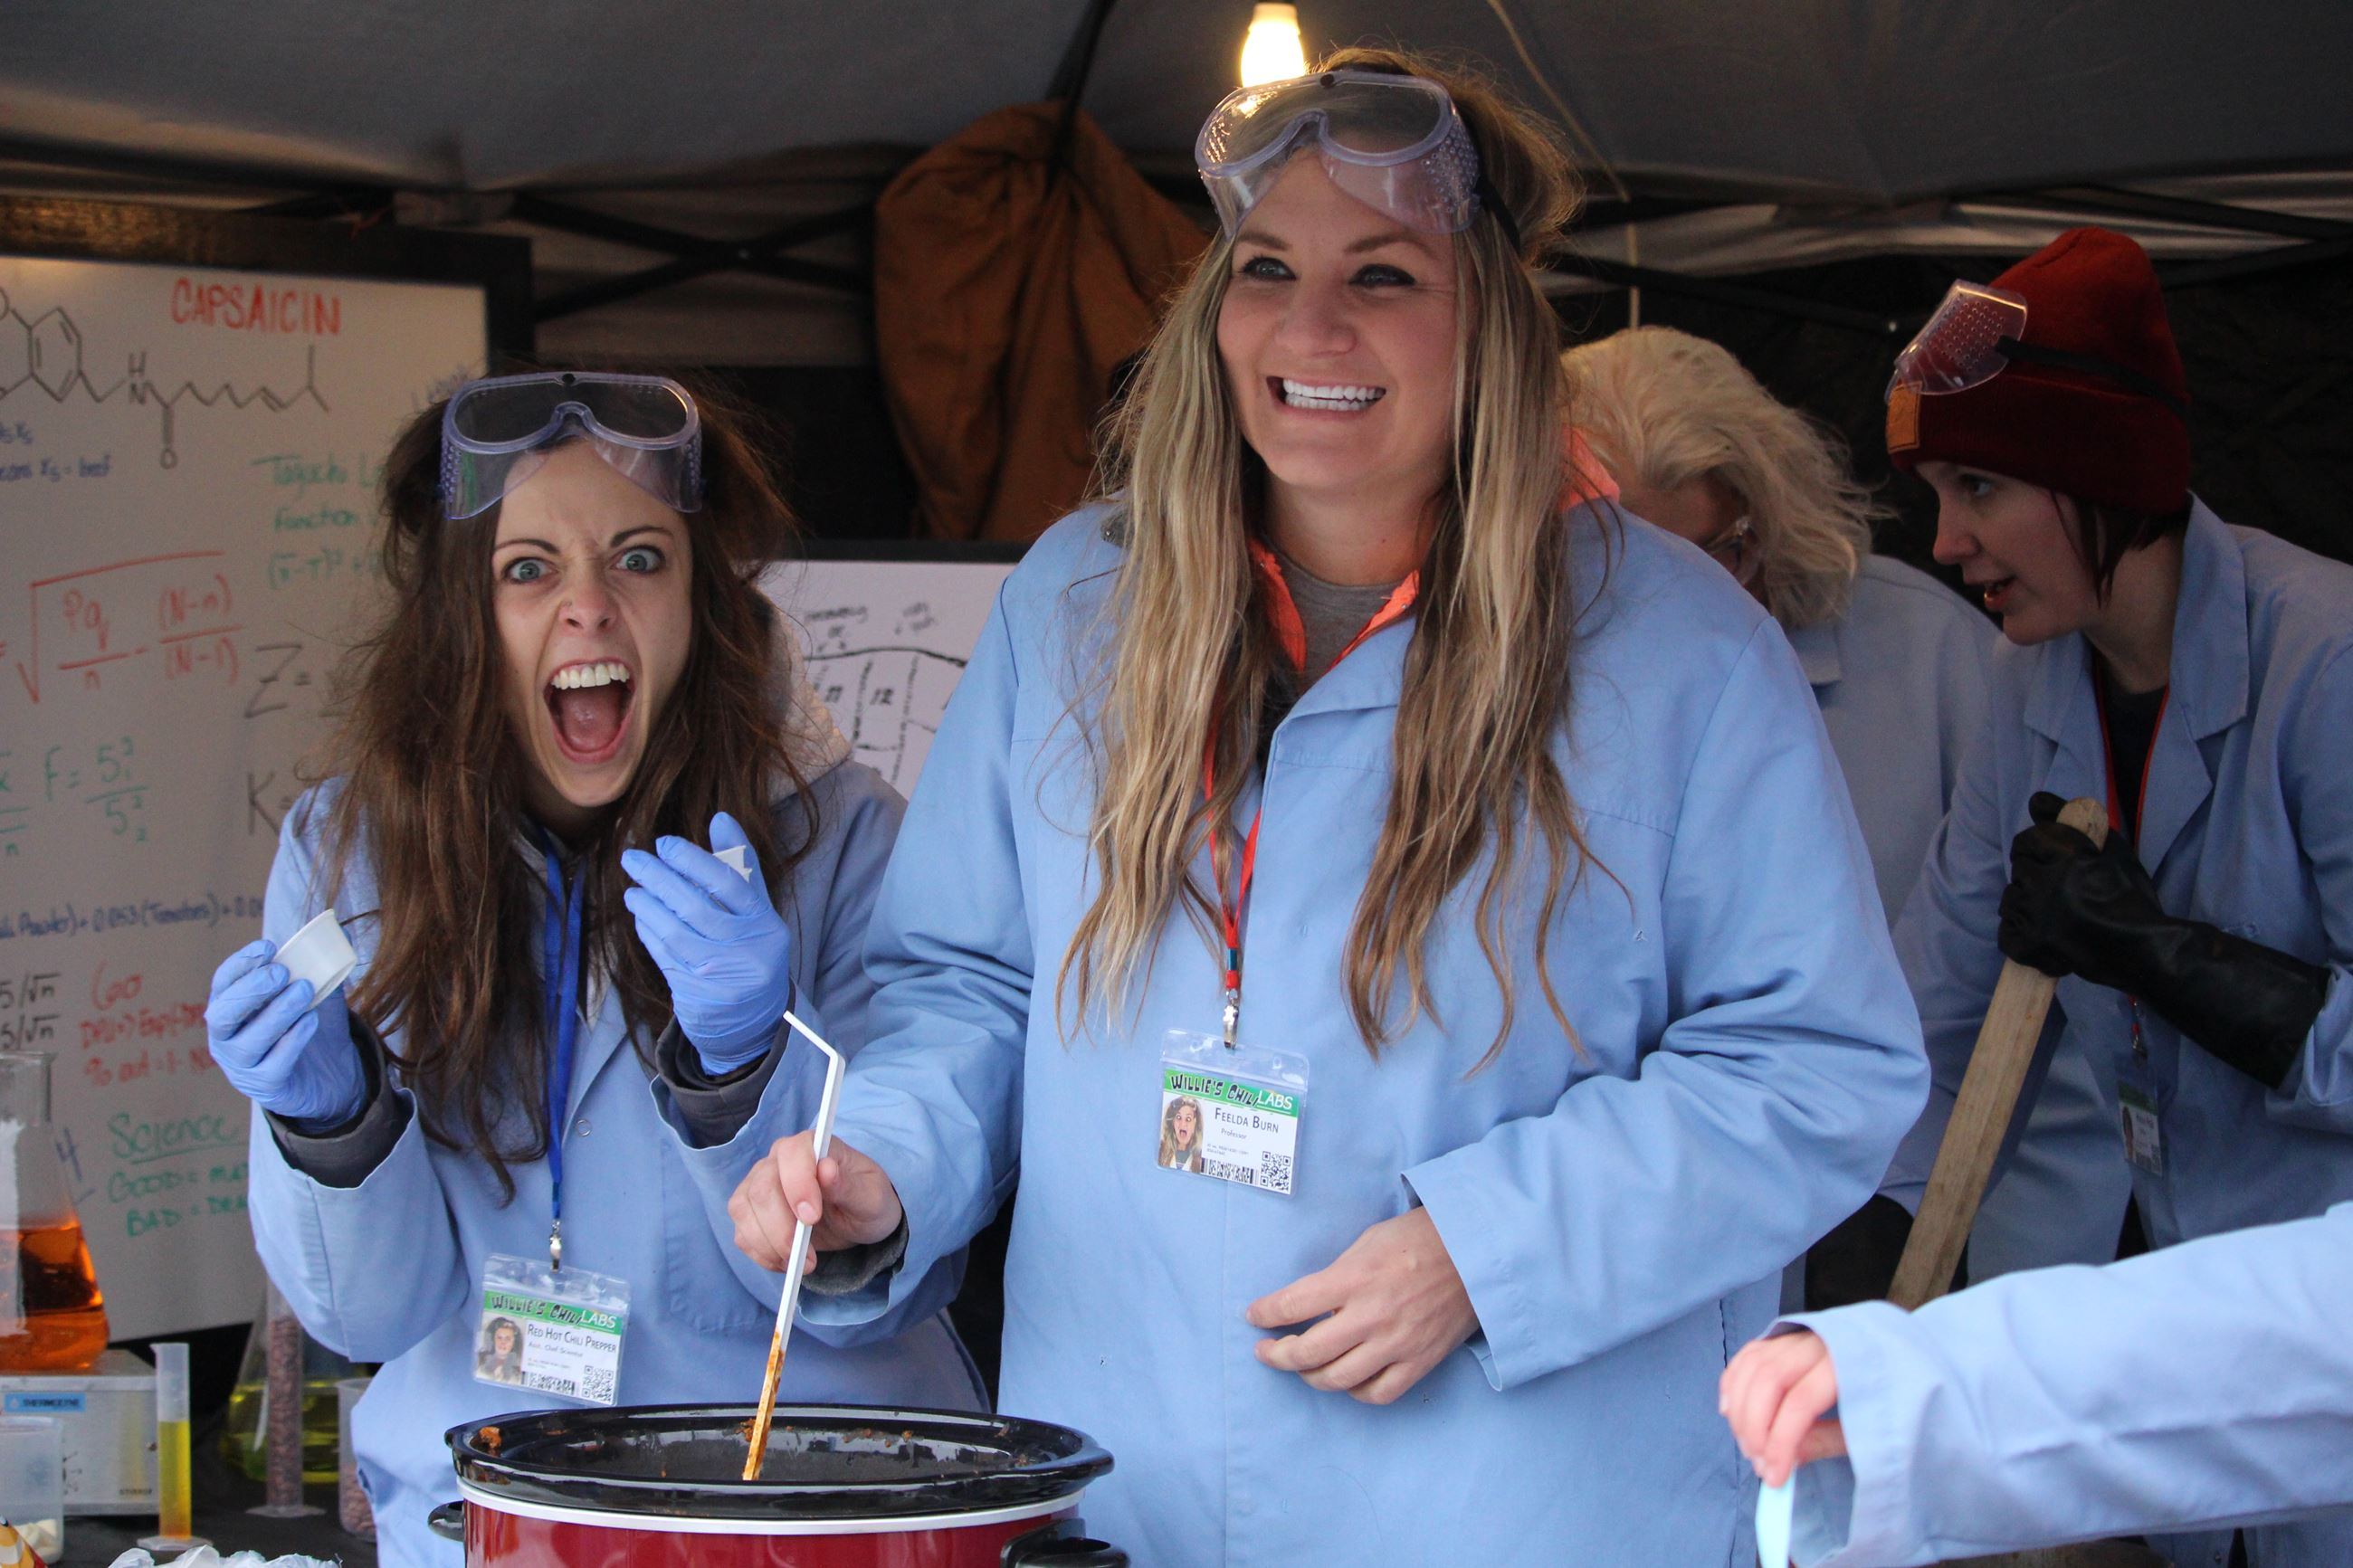 Two ladies dressed as mad scientist serve chili during a community event